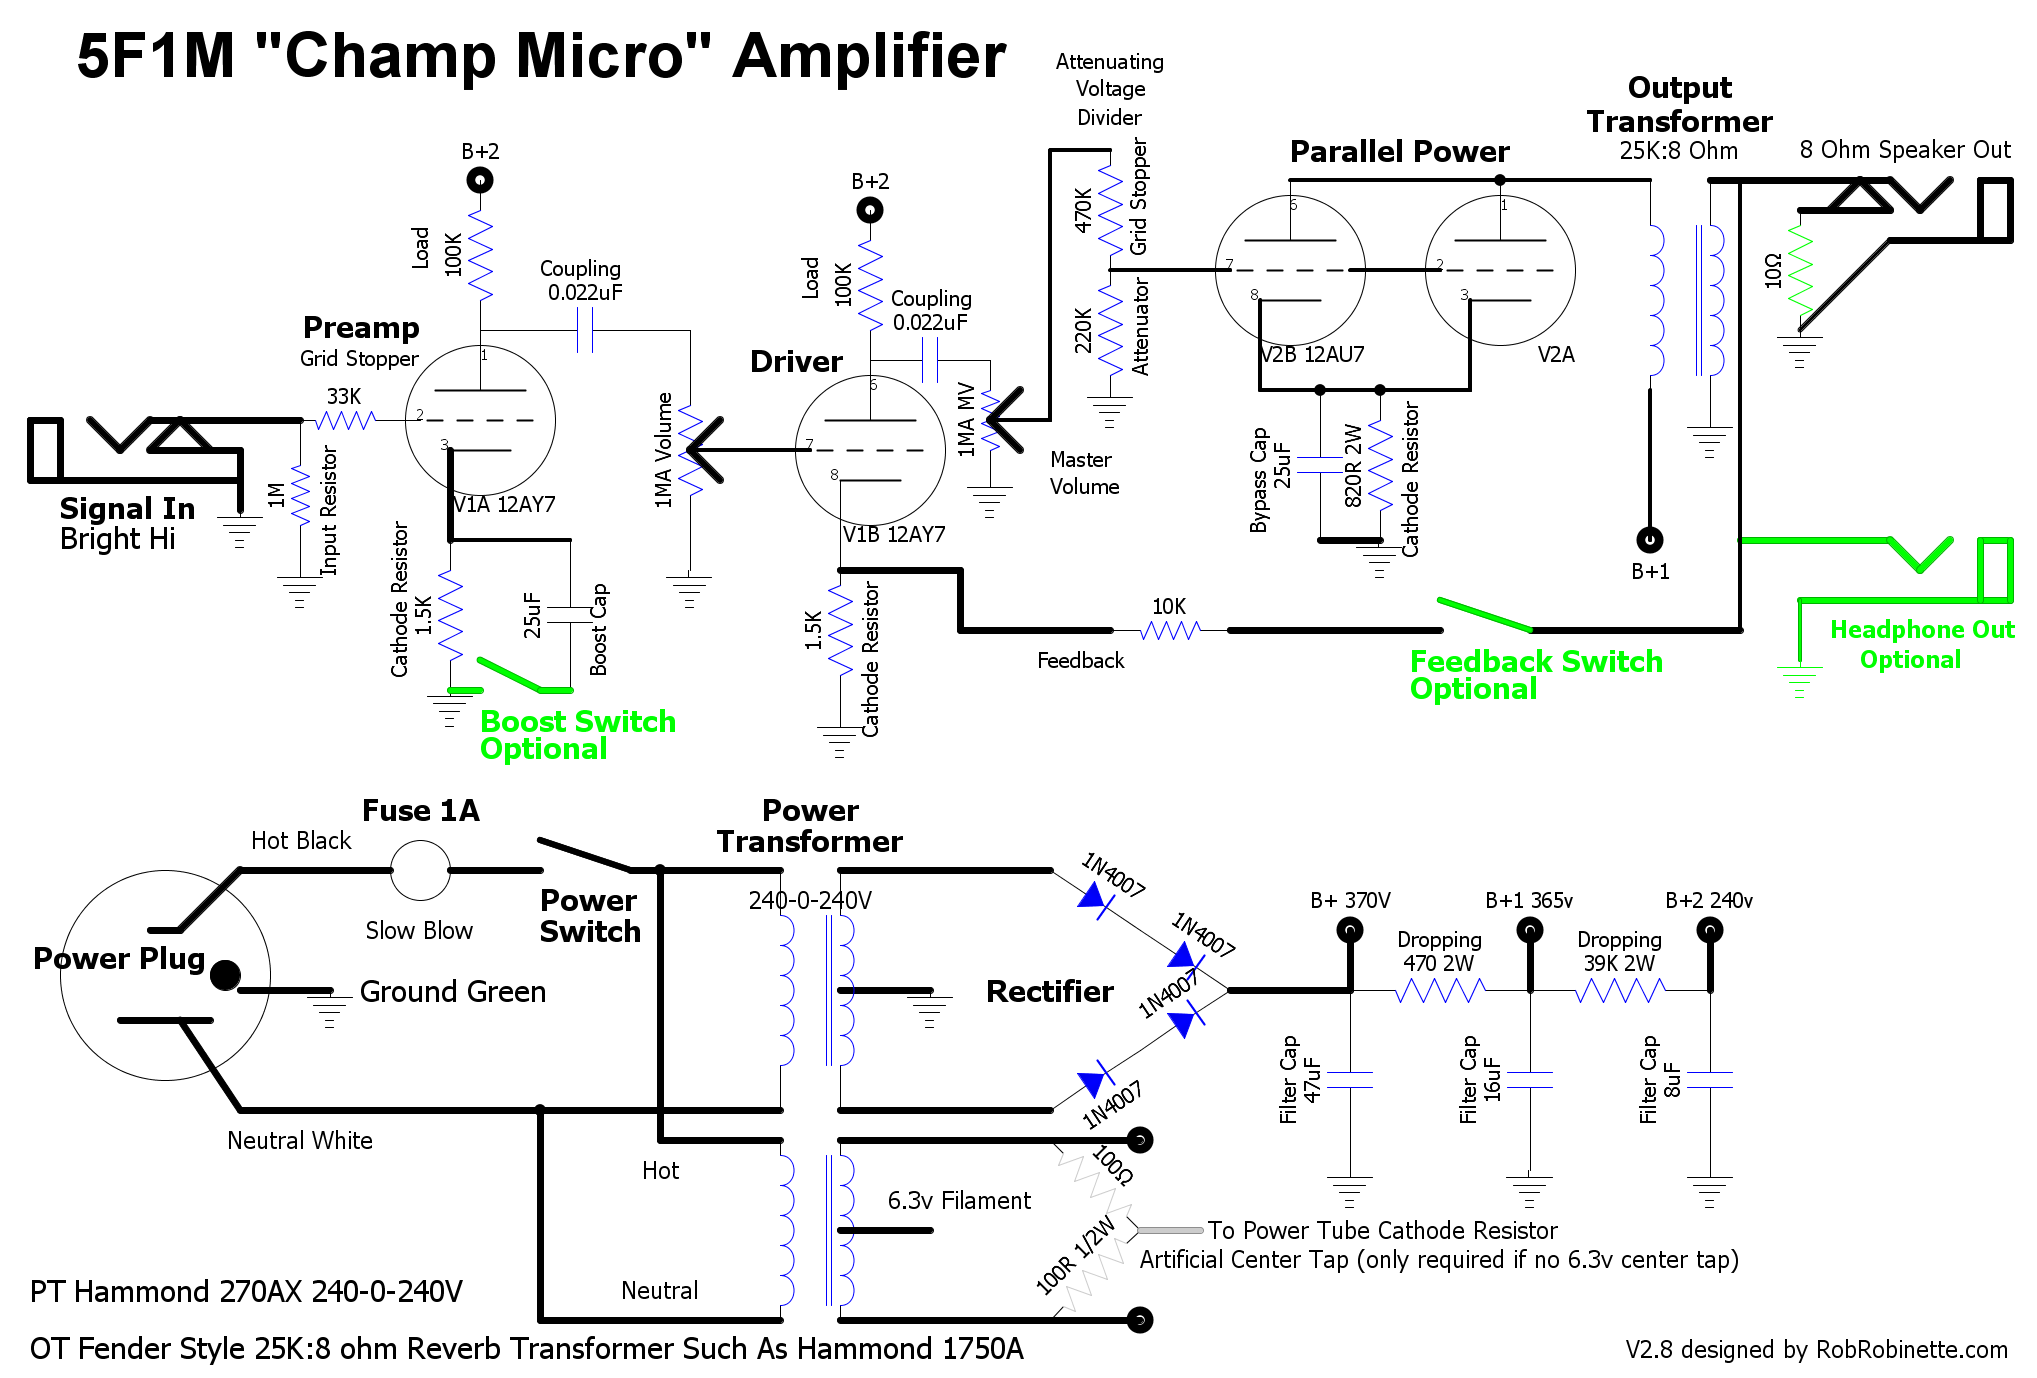 Champ Micro Aluminum Body Stratocaster Wiring Diagram Eyelet Or Turret Board Layout